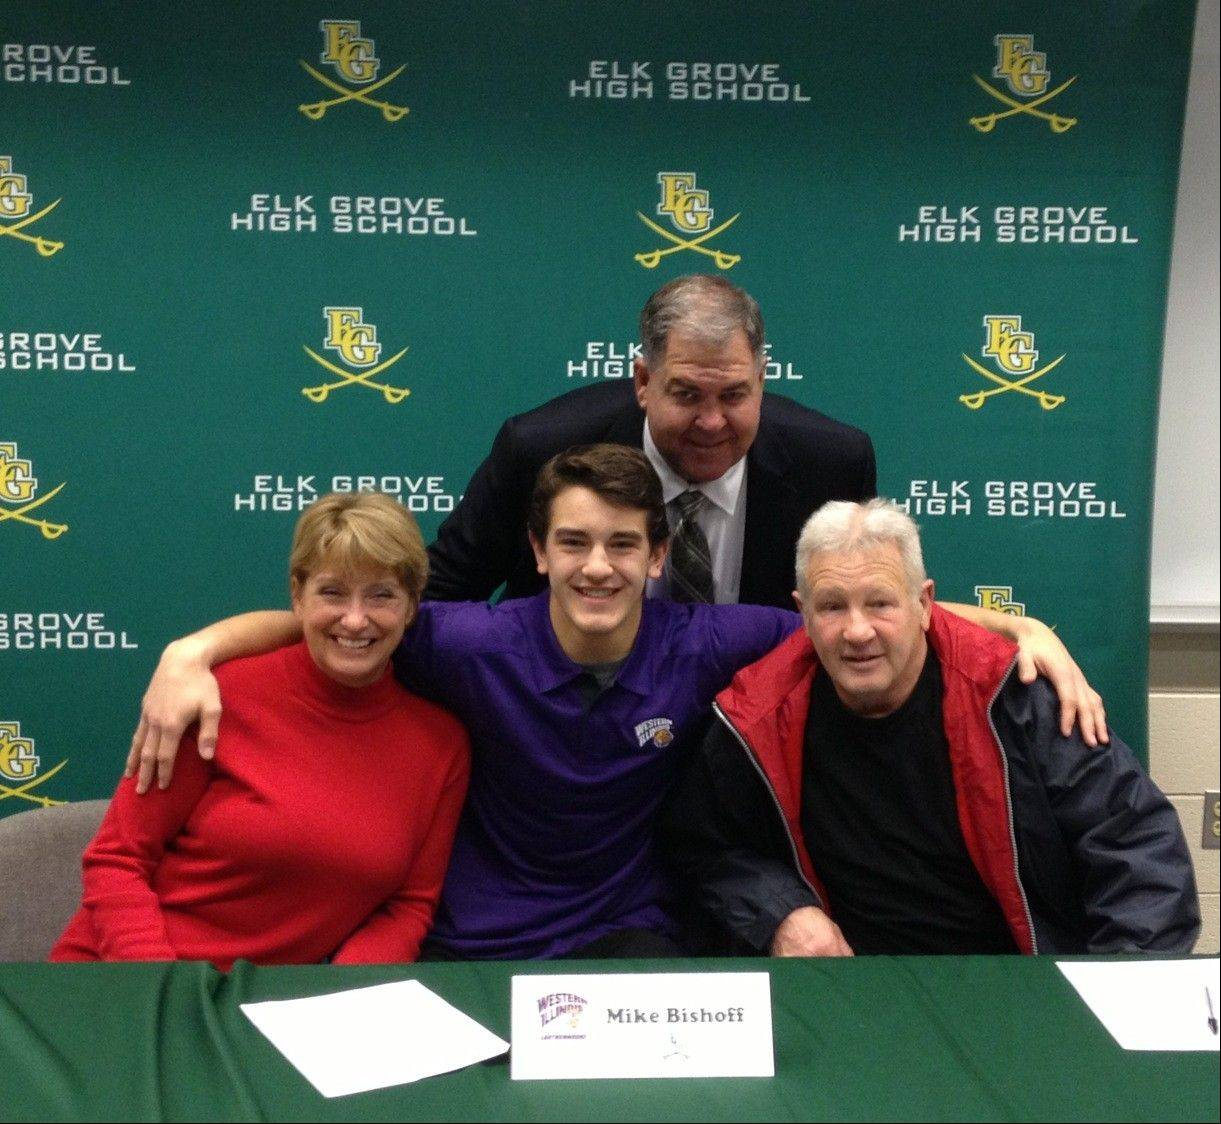 Elk Grove's Mike Bishoff, flanked by his parents, will play college football at Western Illinois.